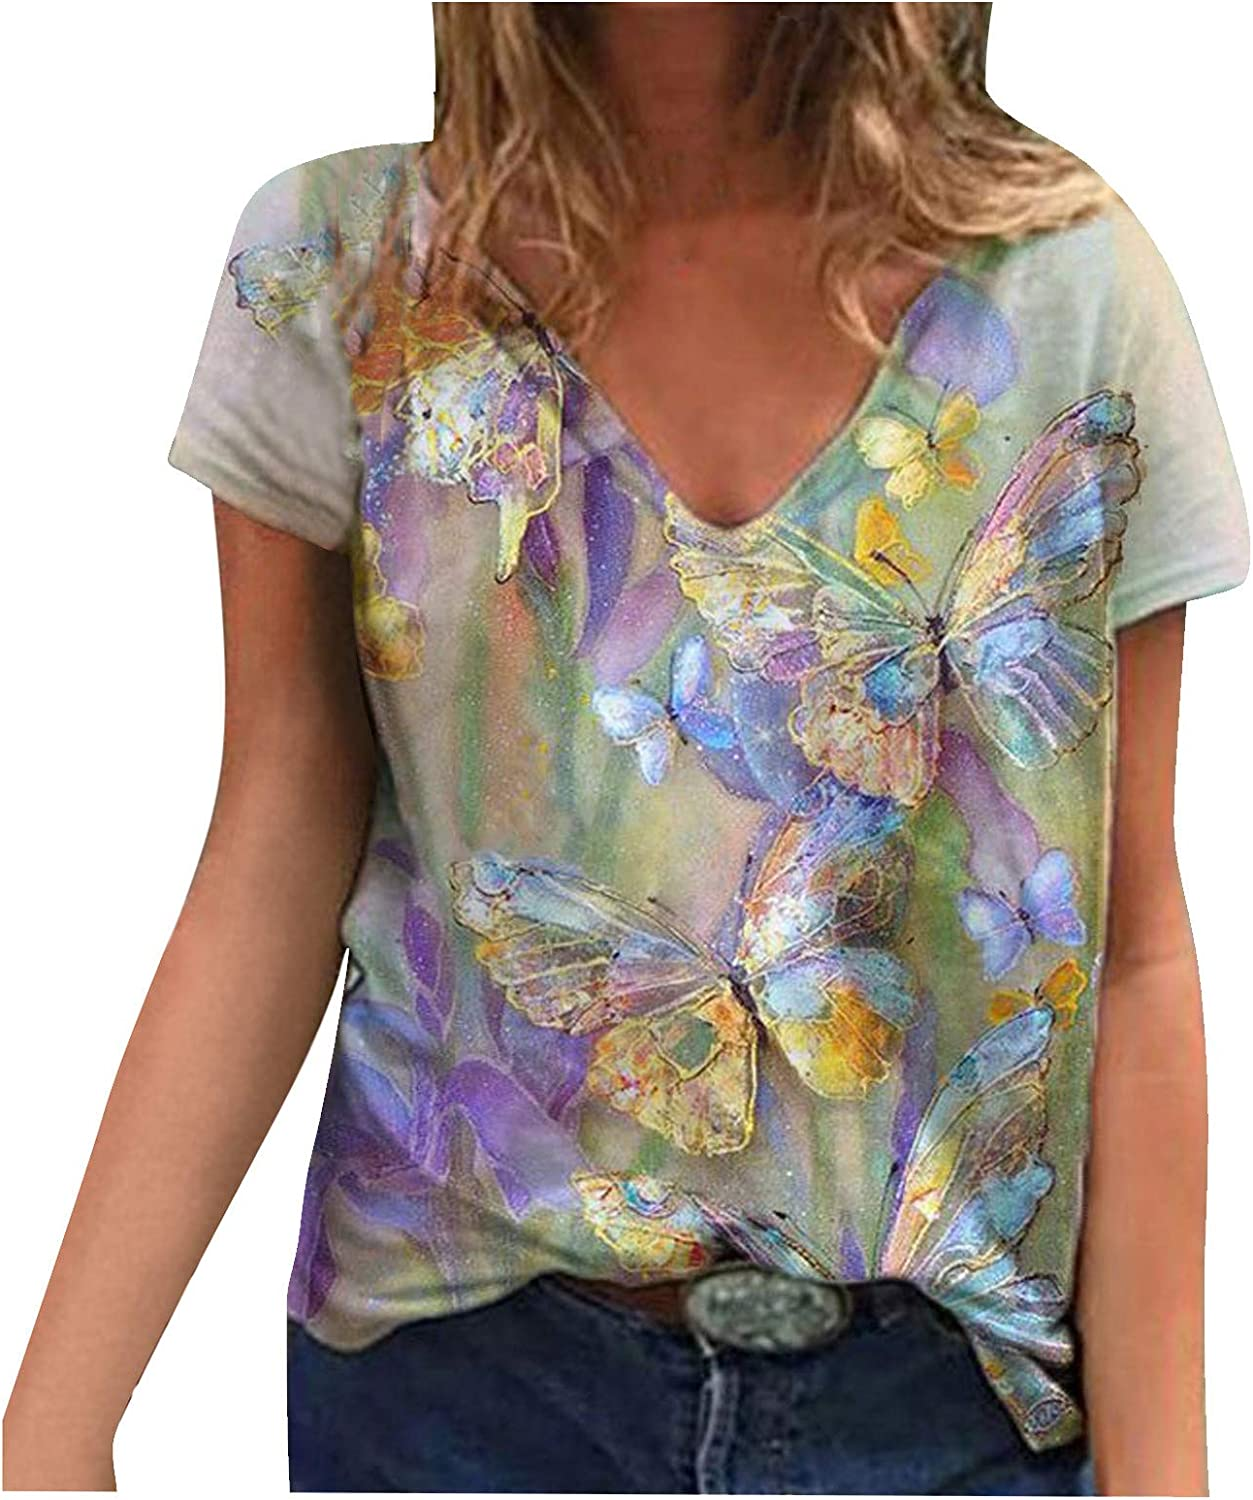 Women's T-Shirts Vintage V Neck Floral Print Short Sleeve Tops for Women Loose Fashion Tees